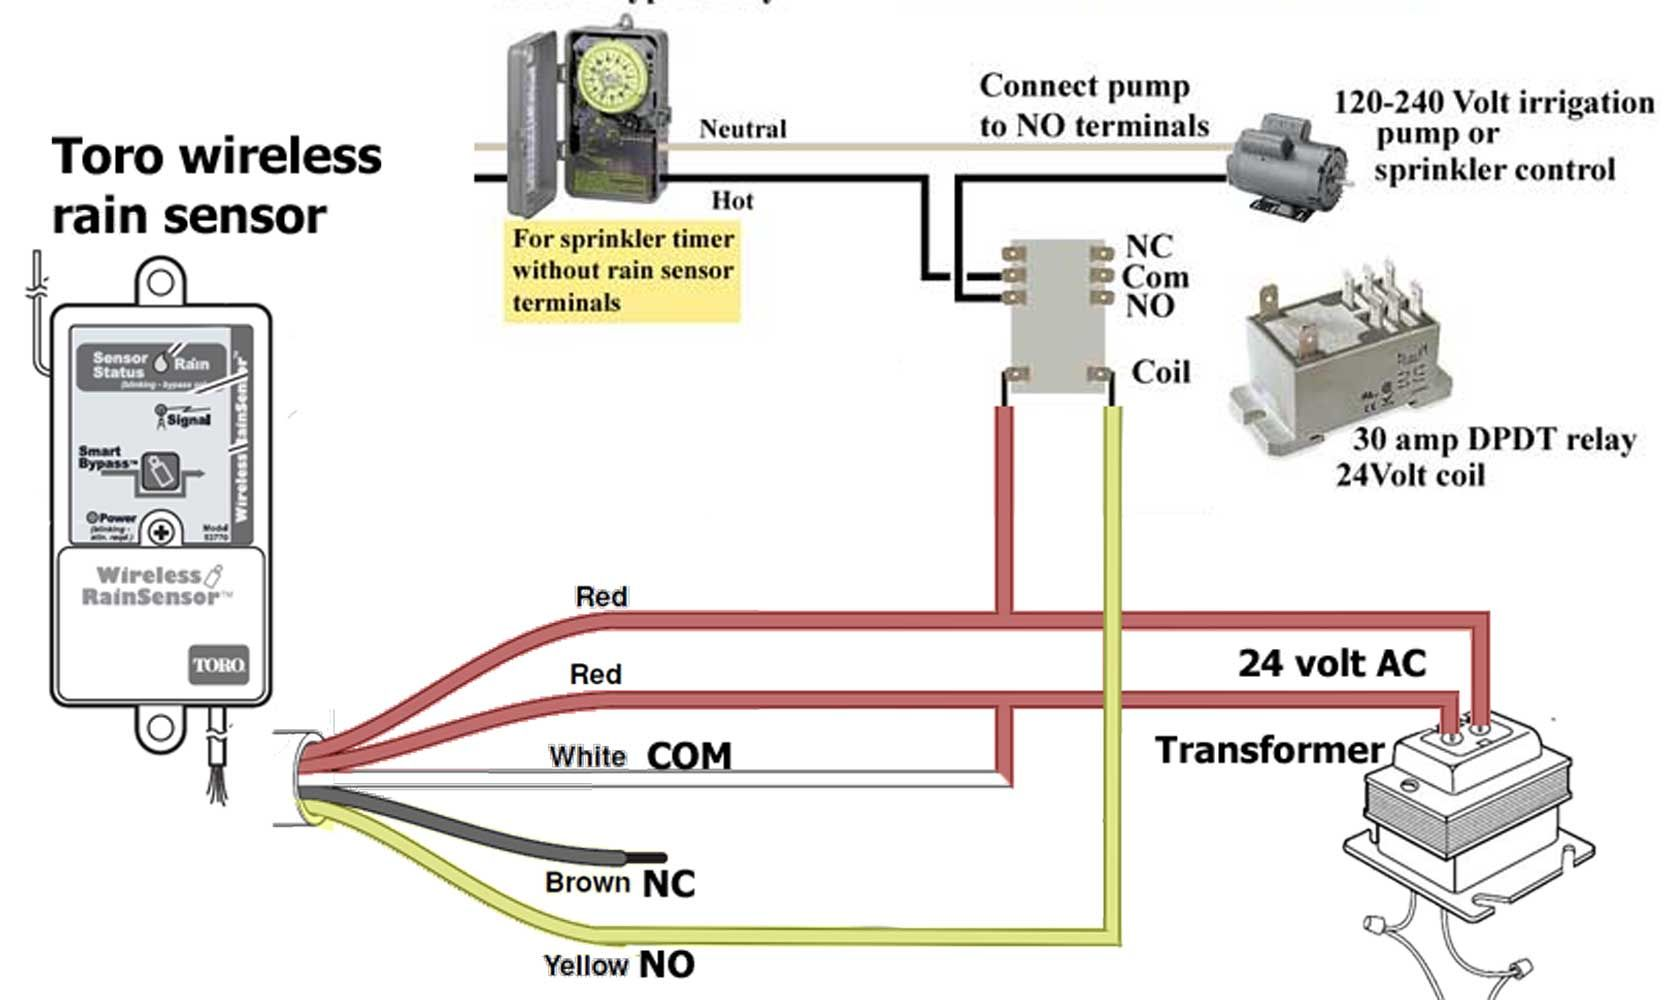 wiring diagram for 220 volt submersible pump,  http://bookingritzcarlton.info/wiring-diagram-for-220-volt-submersib… |  sprinkler timer, sprinkler, sprinkler controls  pinterest